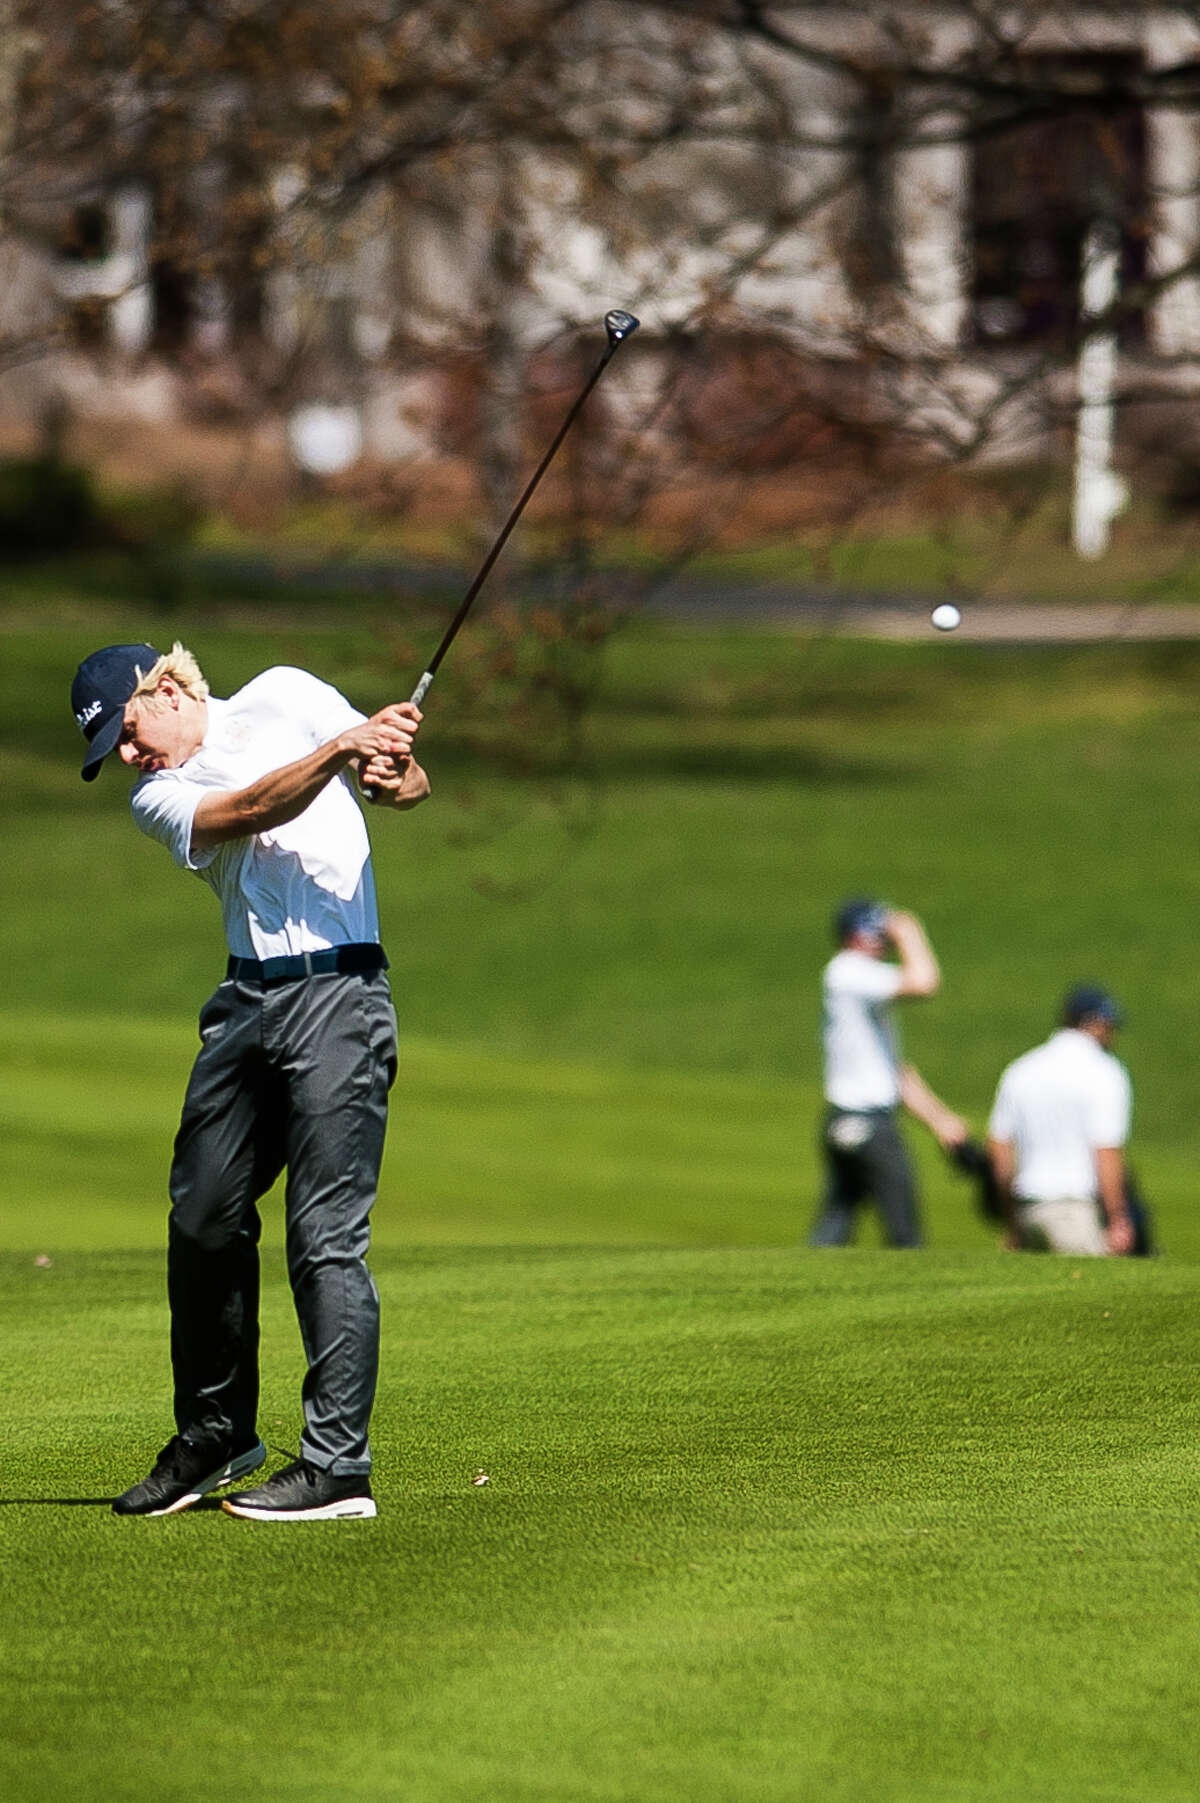 Midland's David Draves competes in a match against Dow on Monday, April 22, 2019 at the Midland Country Club. (Katy Kildee/kkildee@mdn.net)